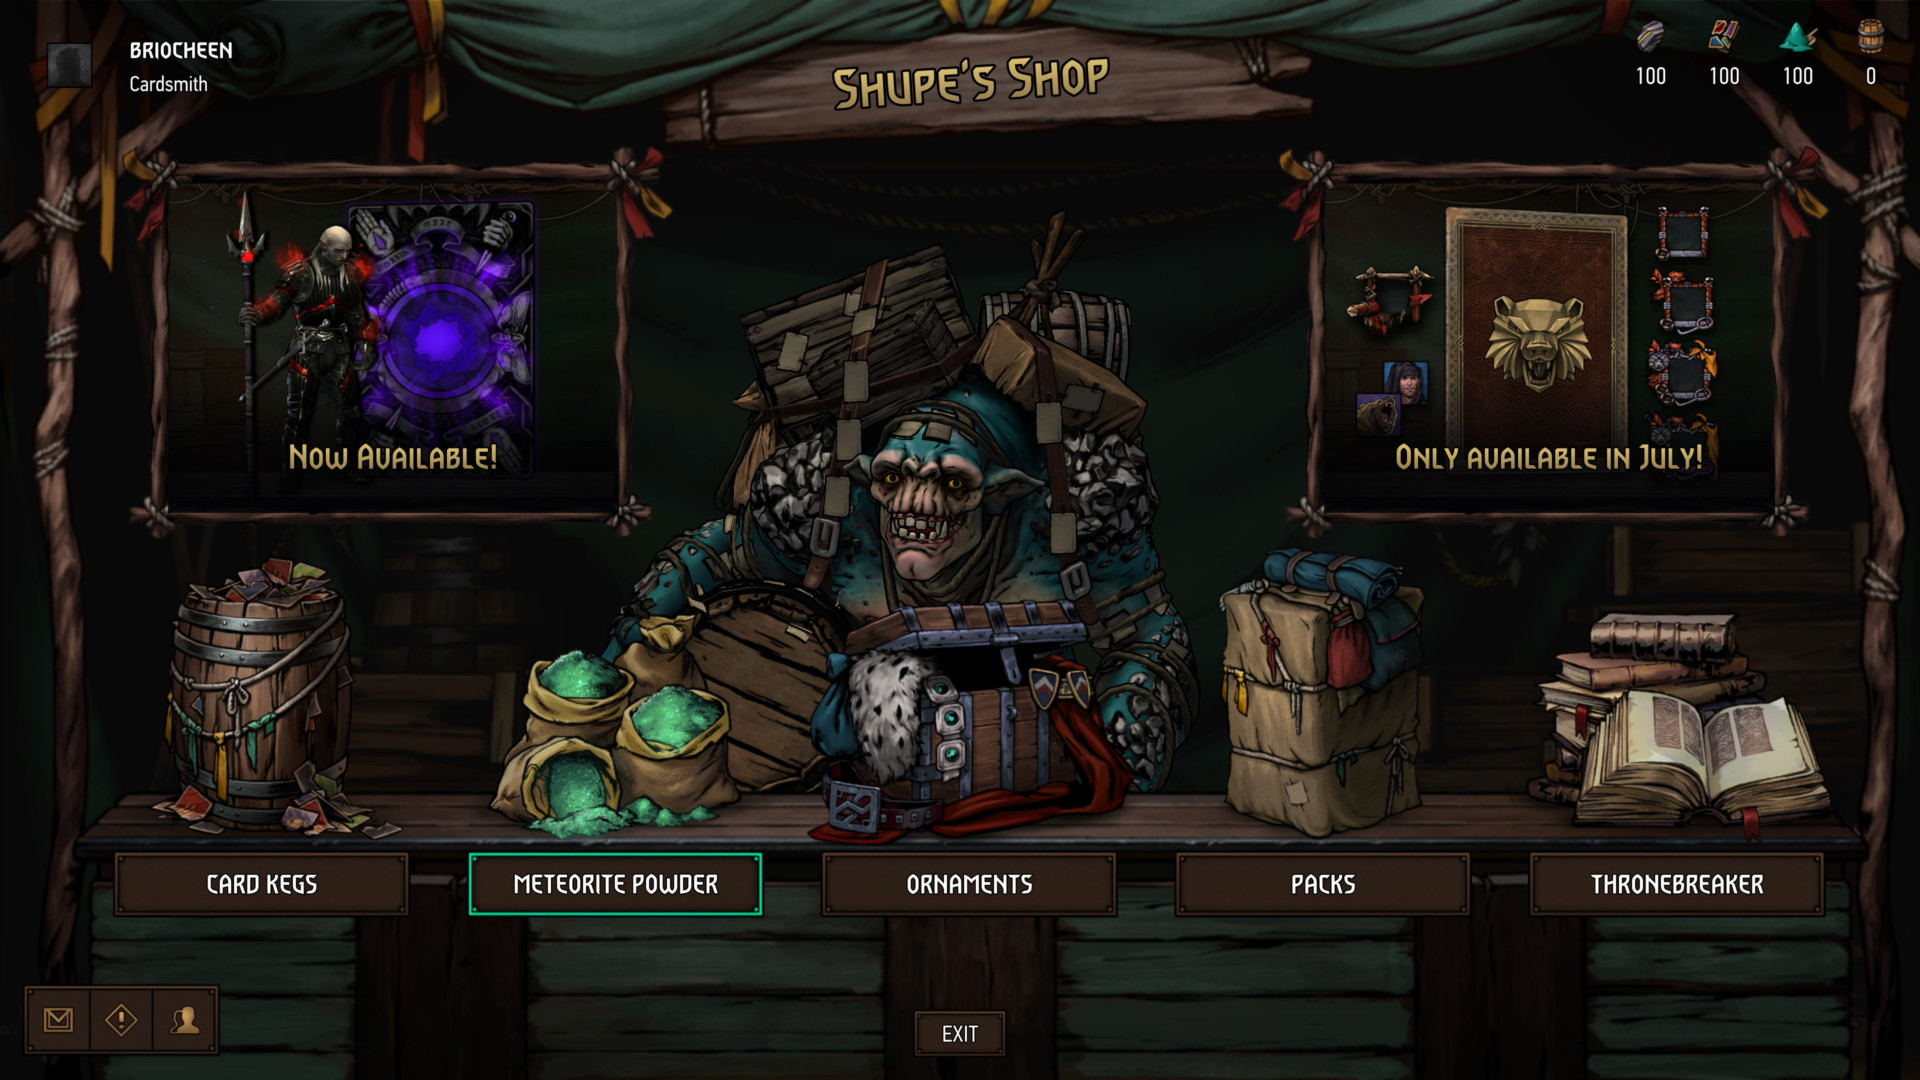 Shop screenshot of Gwent: The Witcher Card Game video game interface.